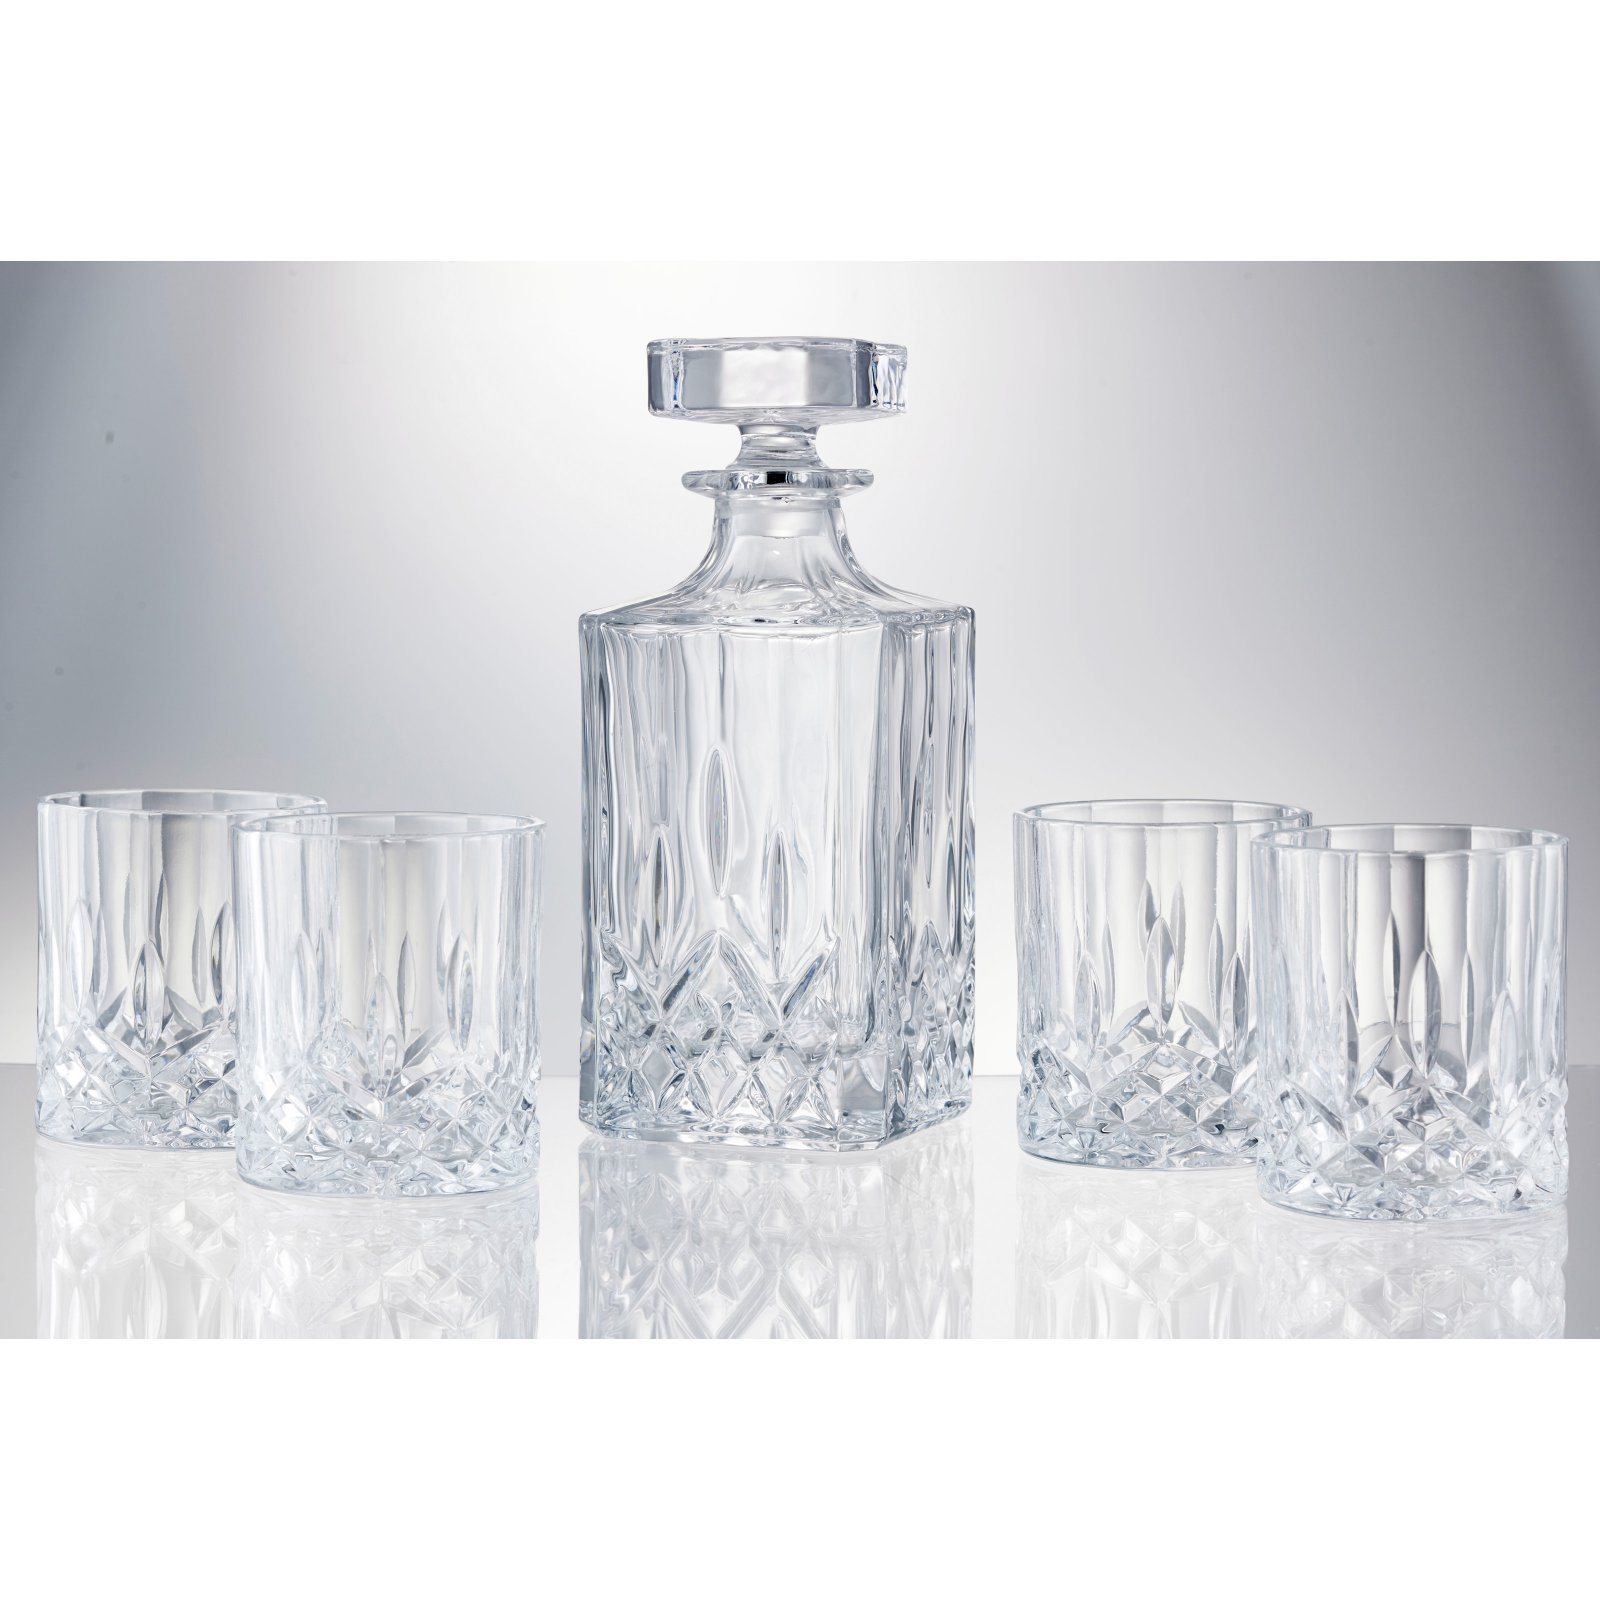 Artland Windsor 5 Piece Decanter Set